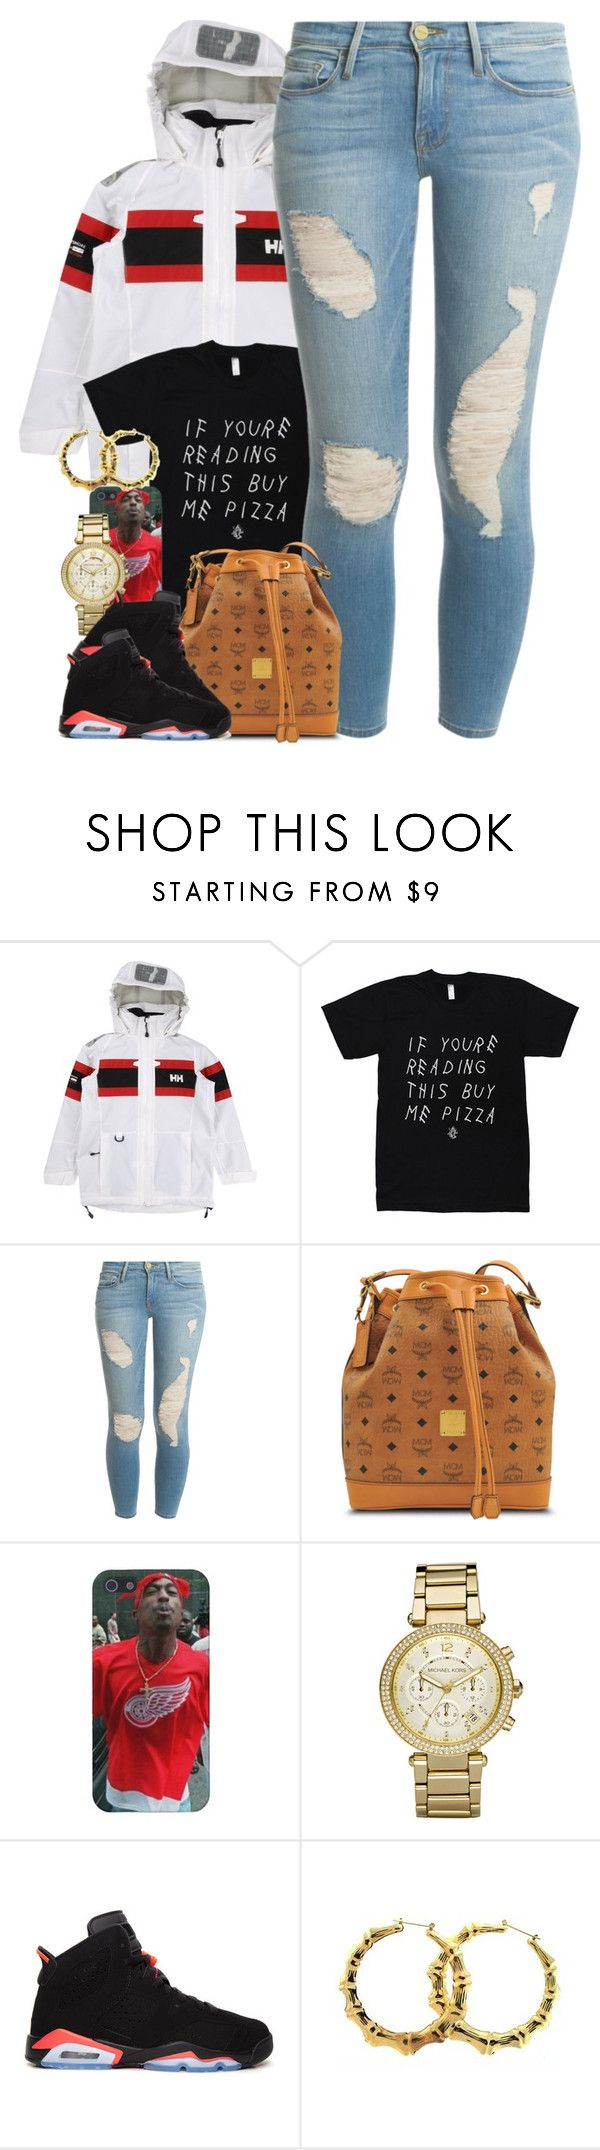 """Untitled #1442"" by power-beauty ❤ liked on Polyvore featuring Helly Hansen, Frame Denim, MCM, Michael Kors, Retrò and Fergie"